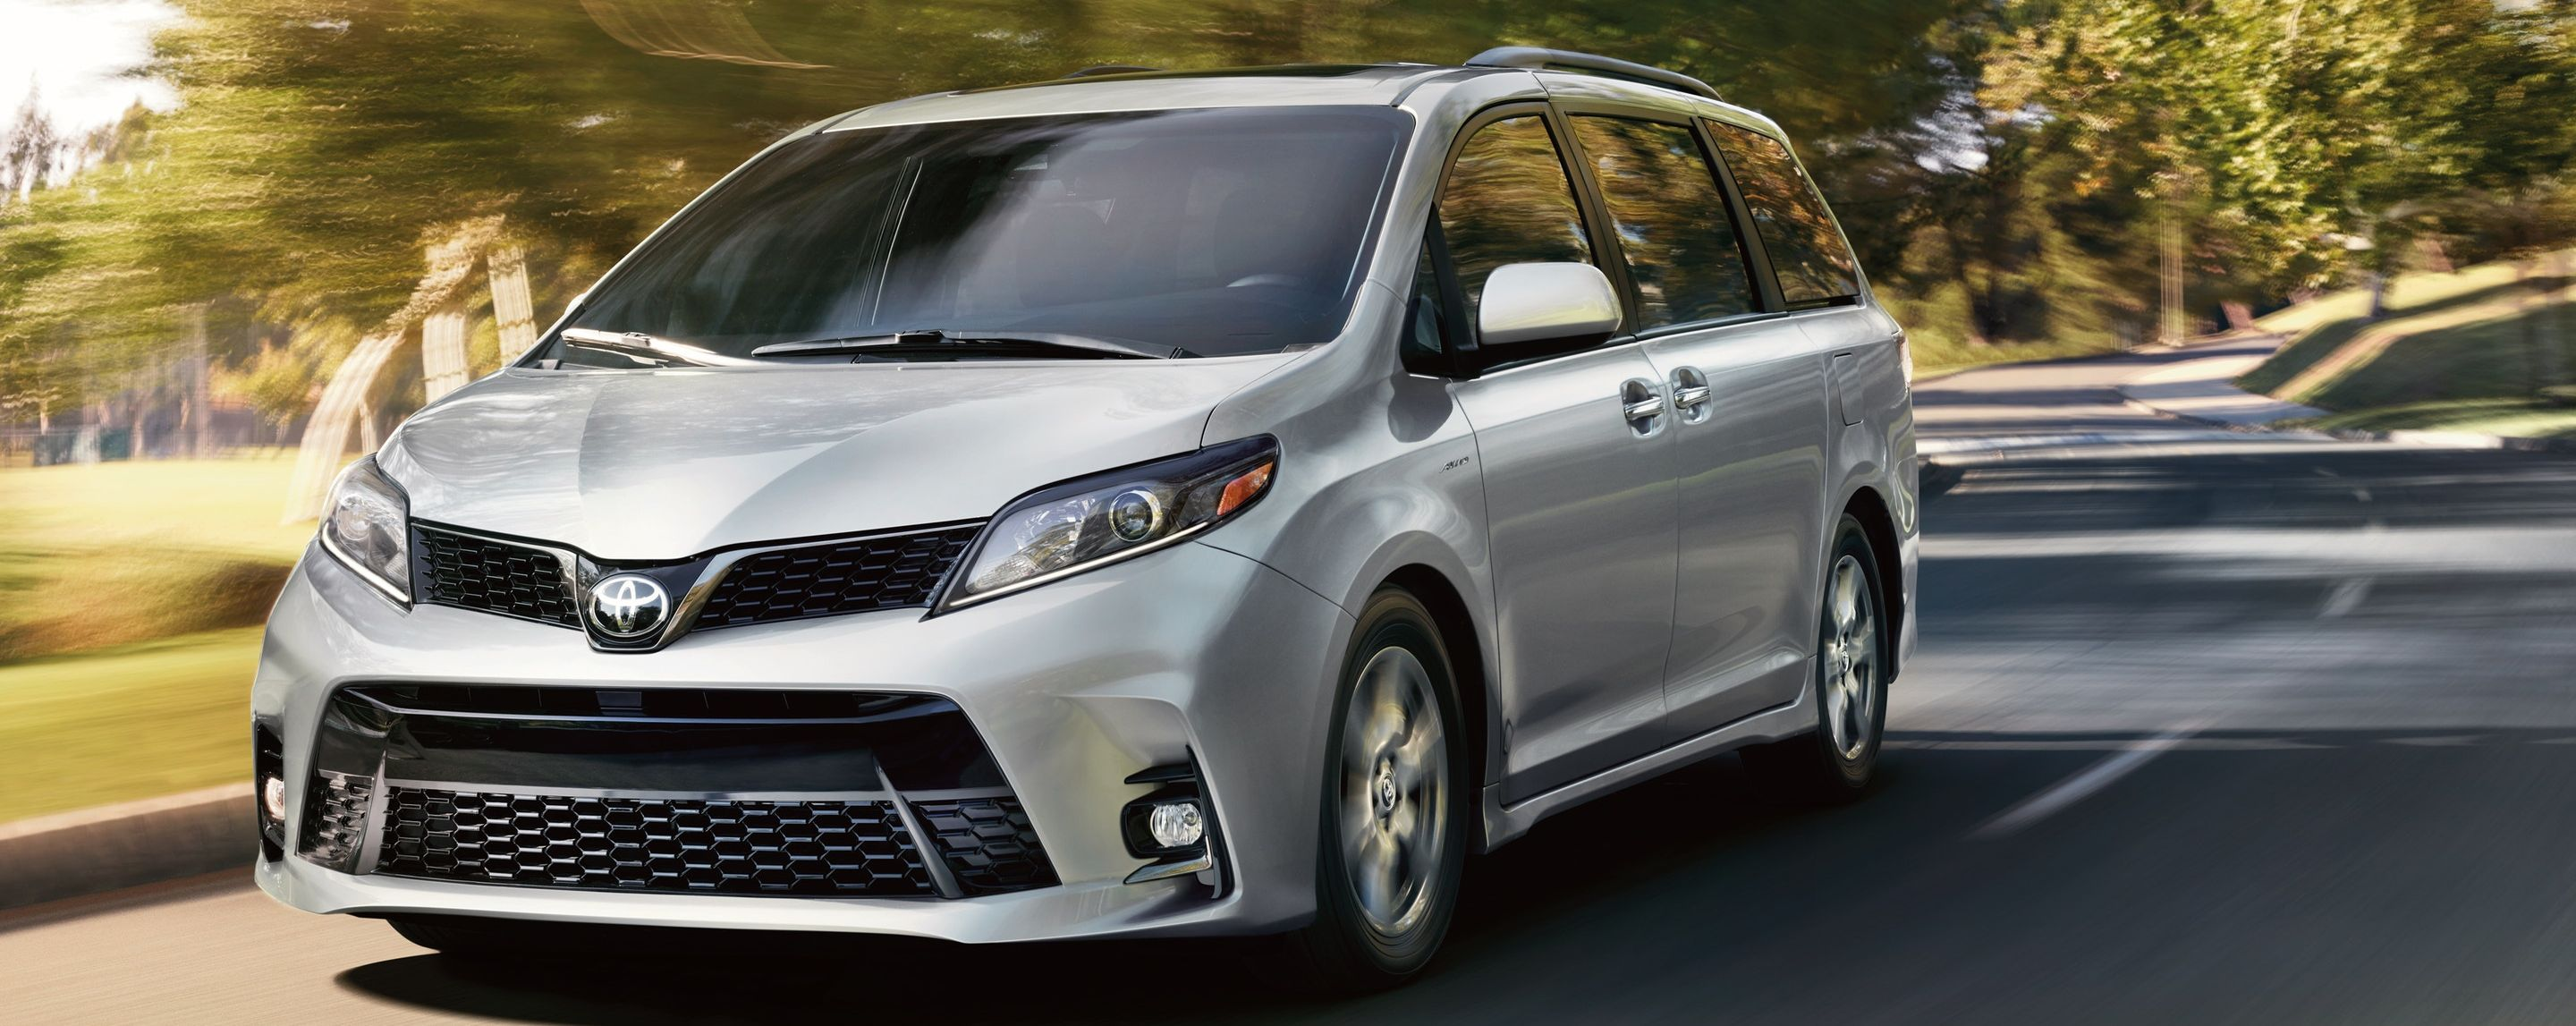 2020 Toyota Sienna Leasing near West Chester, PA